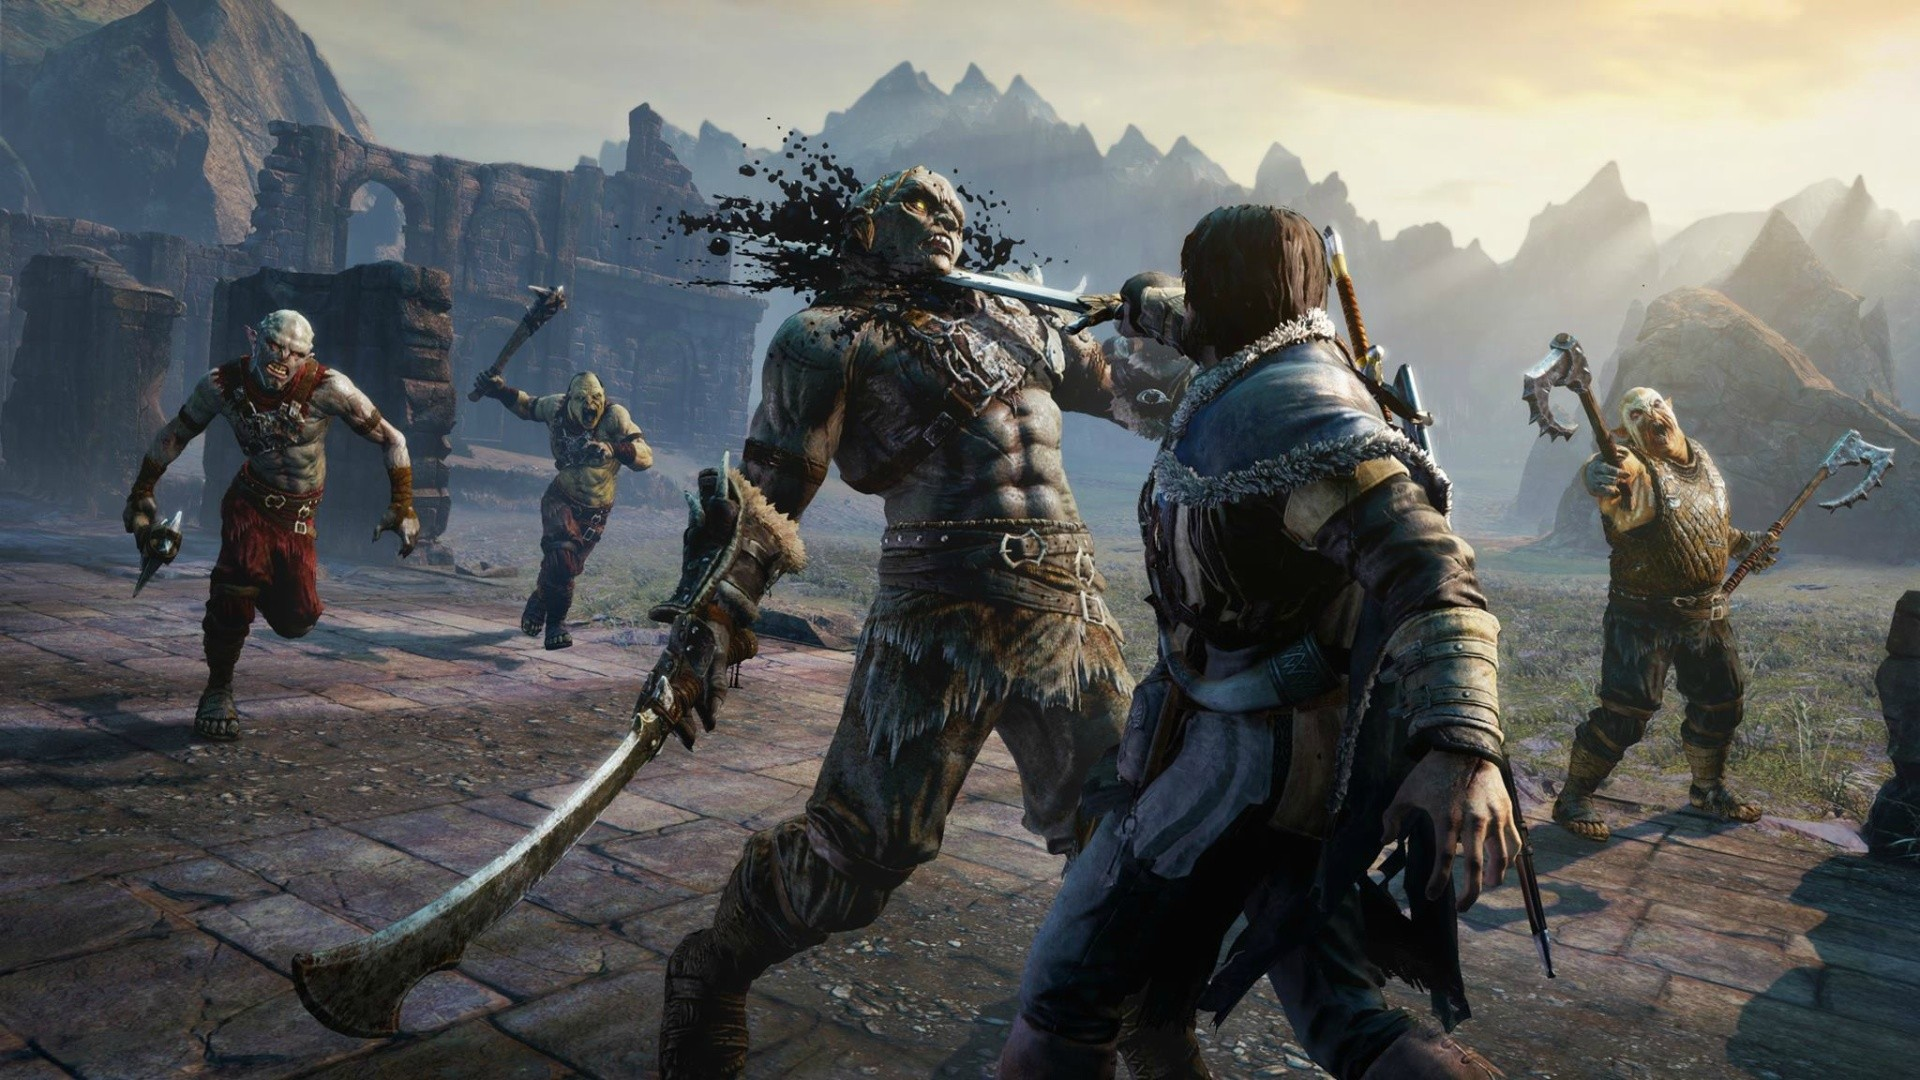 background - Oficiálne predstavený Shadow of War od WB Games je tu